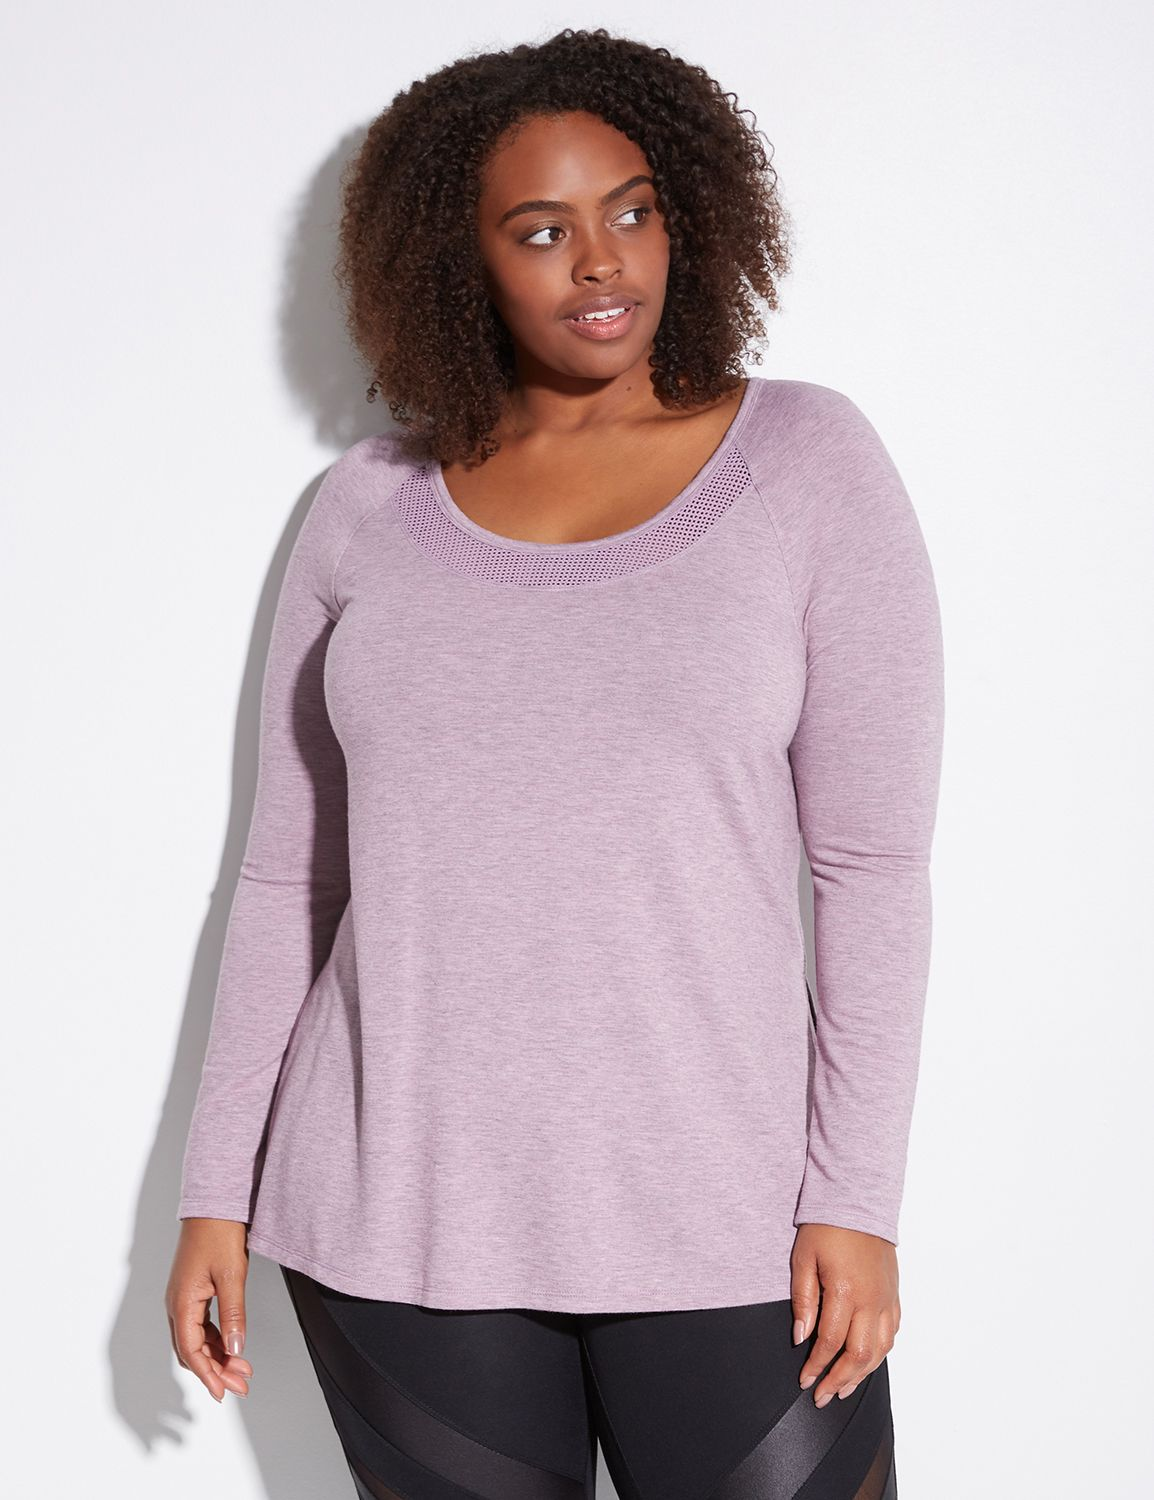 Plus Size Clothing from Lane Bryant. #lanebryant #plussizeclothing #plussize